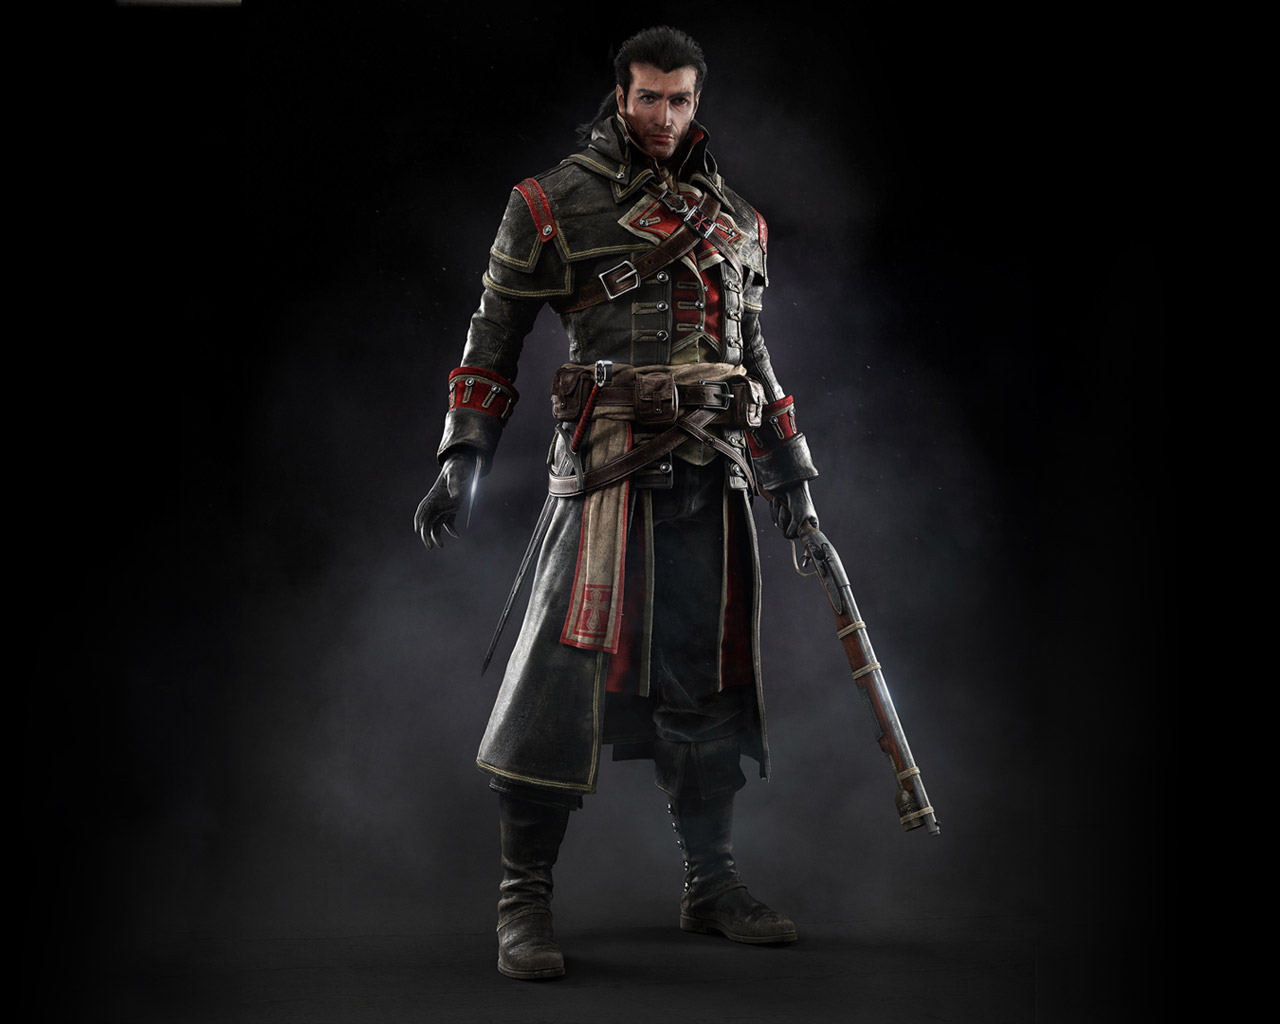 Assassin's Creed: Rogue Wallpaper in 1280x1024